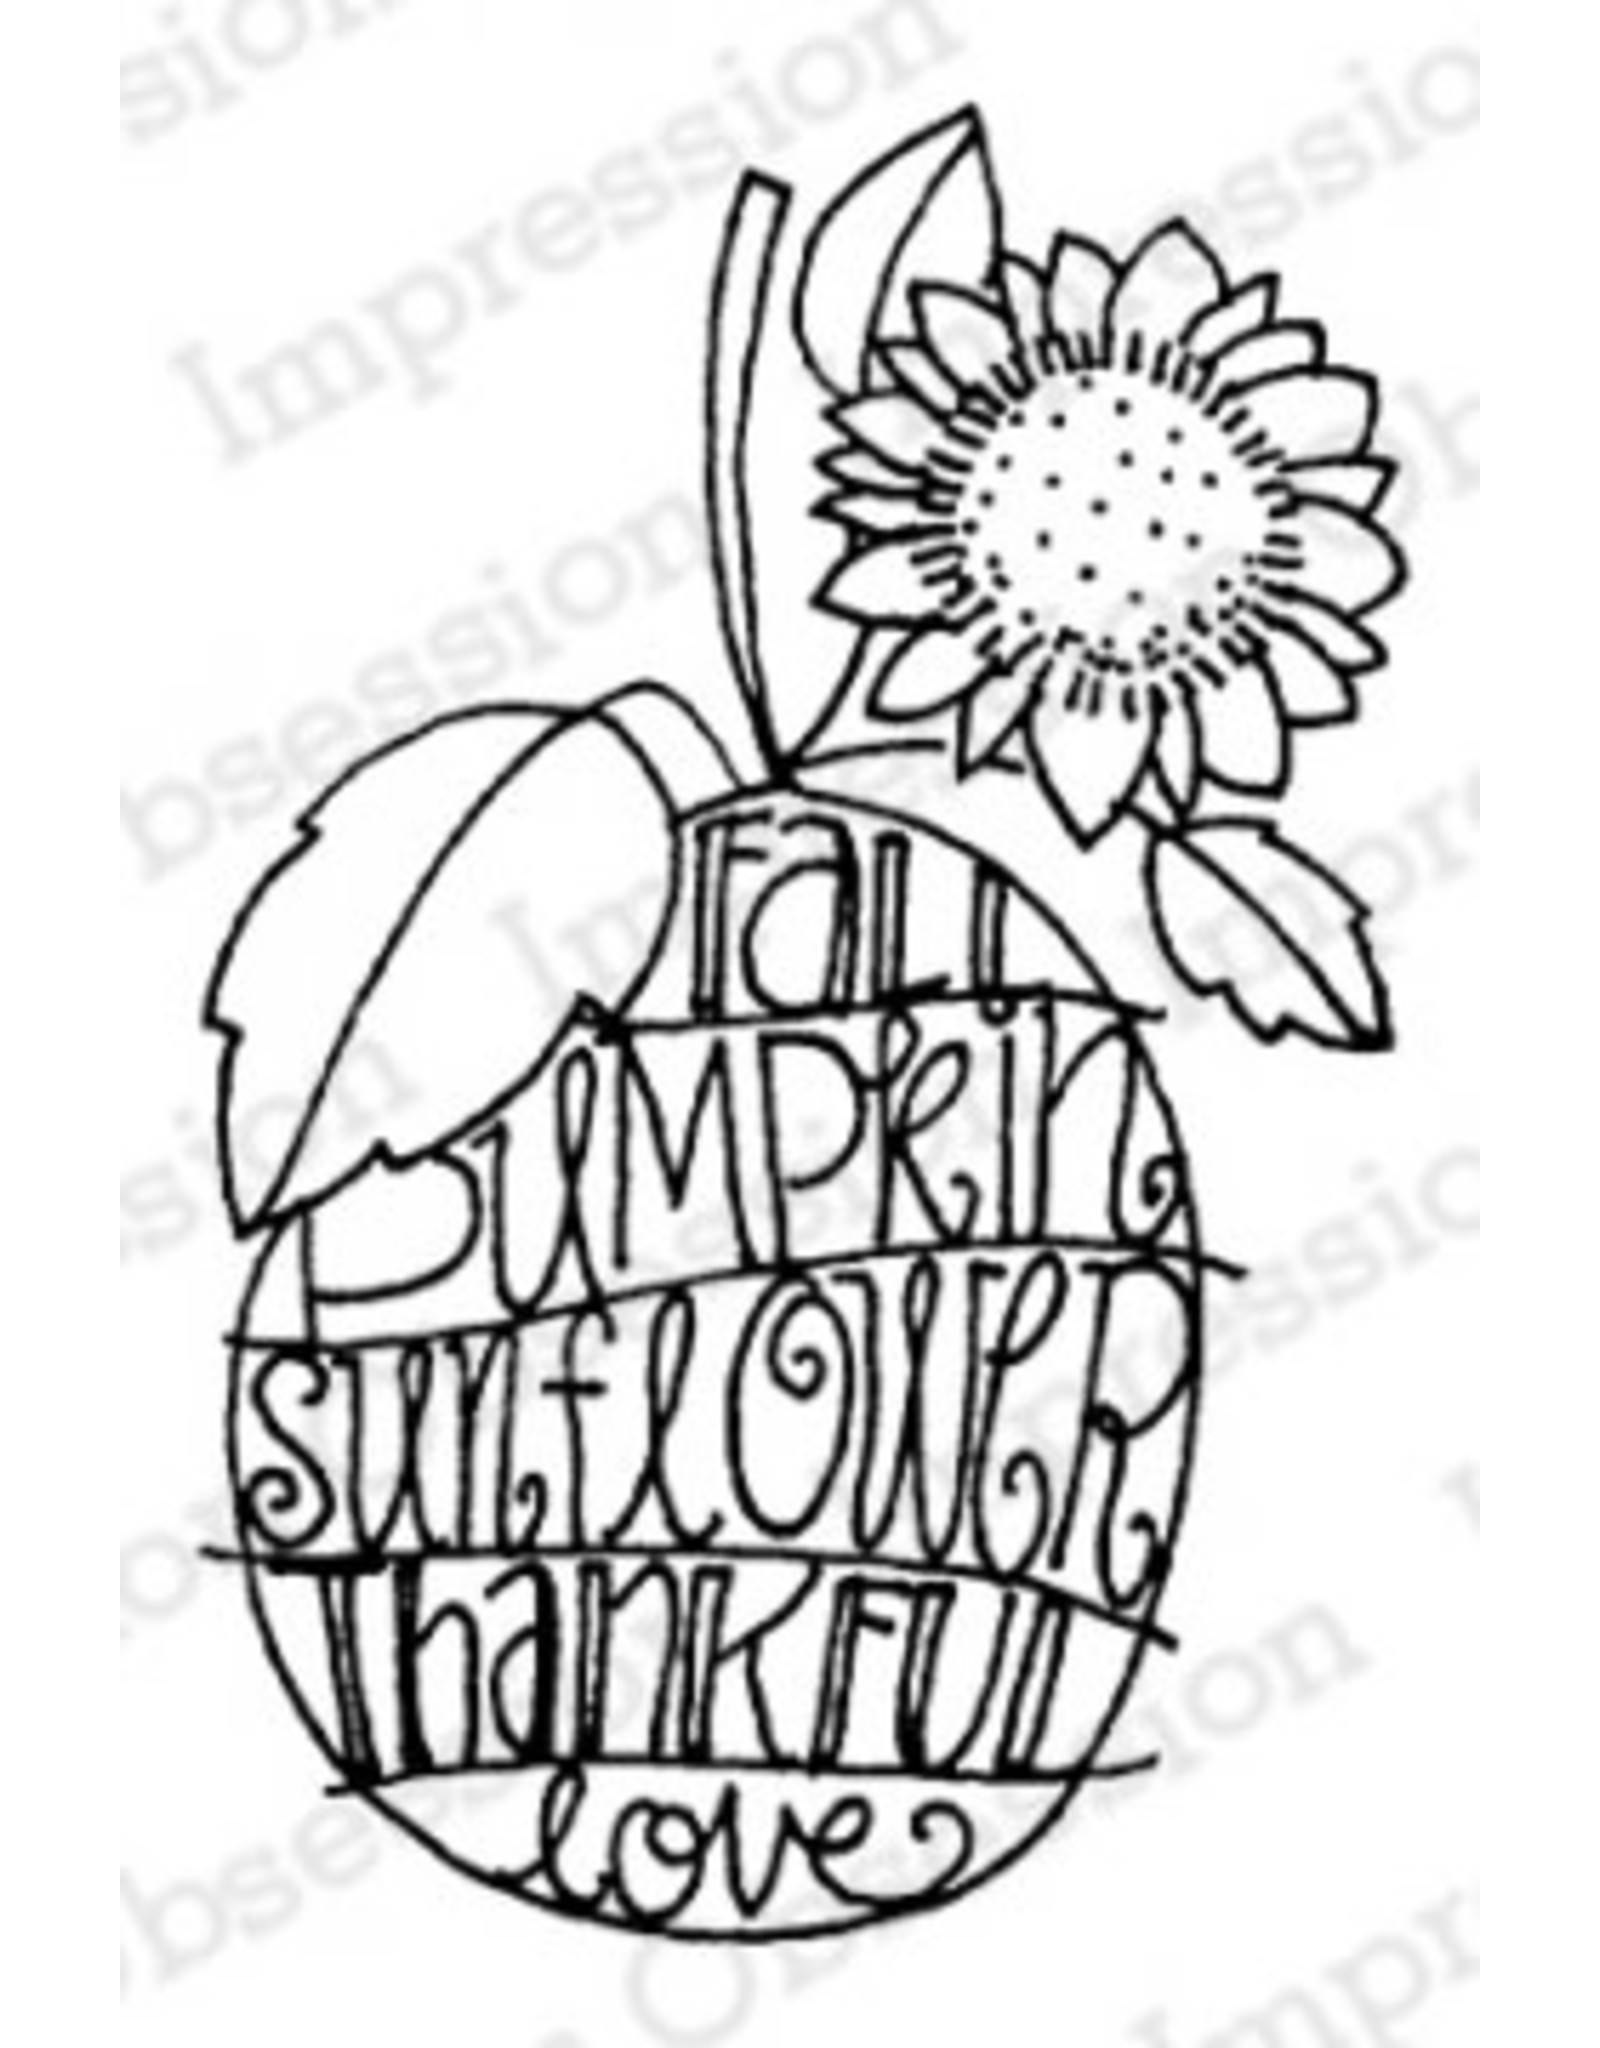 Impression Obsession Sunny Pumpkin - Cling Stamp